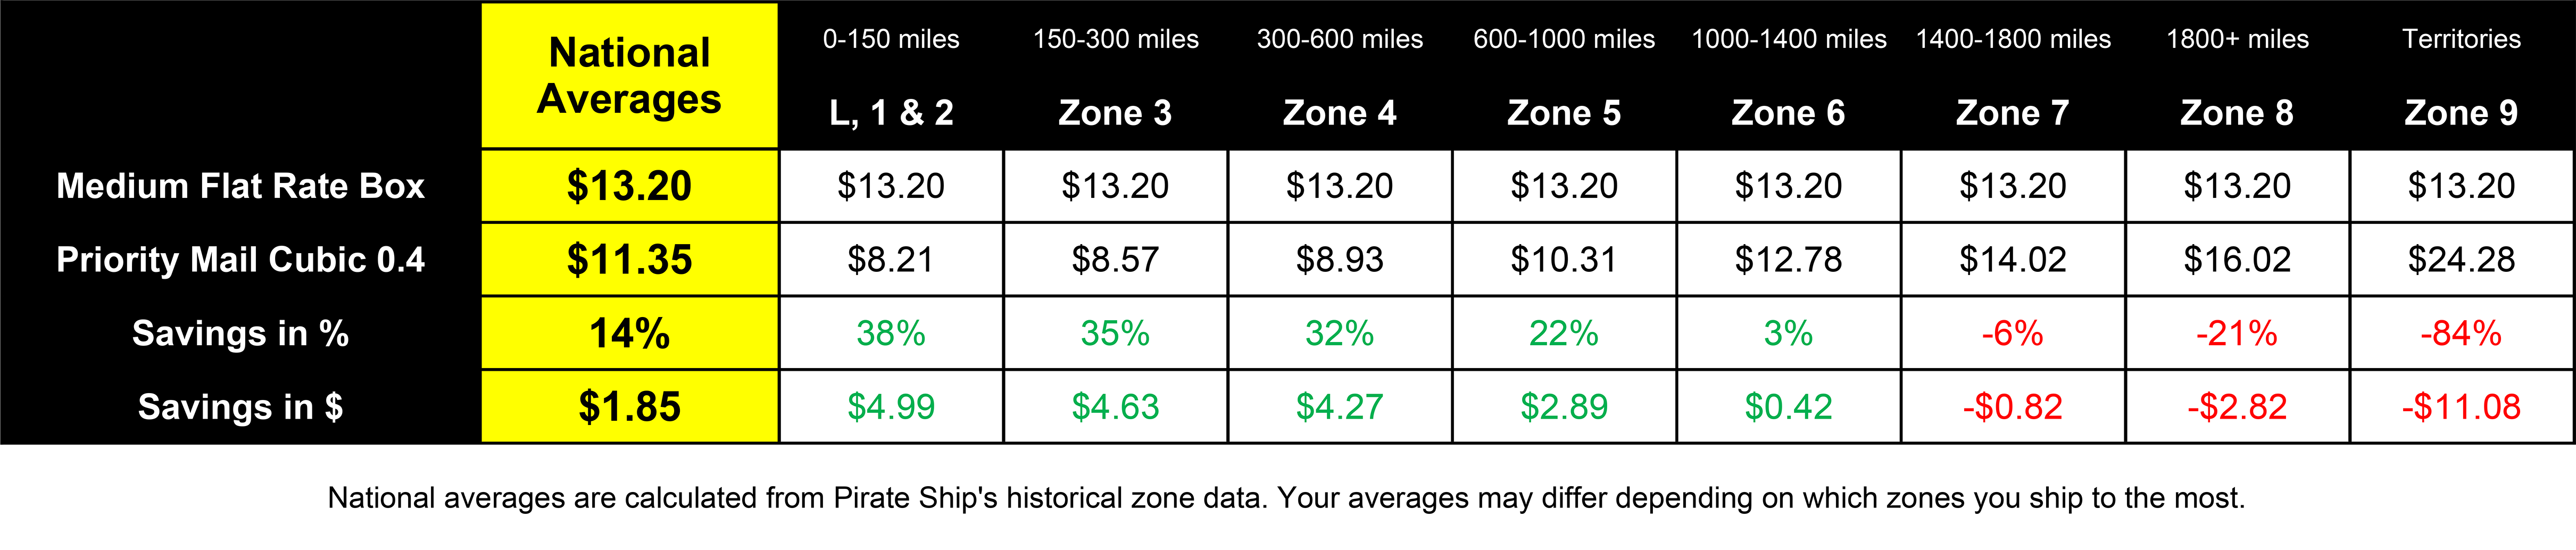 A screenshot of a chart showing a rate comparison between Medium Flat Rate Boxes and Priority Mail Cubic 0.4. Medium Flat Rate Boxes always costs $13.20 while Cubic 0.4 costs $11.35 on average. There is a 14% savings with Cubic, which is $1.85 on average. With local zones 1 and 2, Cubic 0.4 costs $8.21, which is a 38% savings, or a savings of $4.99. With zone 3, Cubic 0.4 costs $8.57, which is a 35% savings, or a savings of $4.63. With zone 4, Cubic 0.4 costs $8.93, which is a 32% savings, or a savings of $4.27. With zone 5, Cubic 0.4 costs $10.31, which is a 22% savings, or a savings of $2.89. With zone 6, Cubic 0.4 costs $12.78, which is a 3% savings, or a savings of $0.42. With zone 7, Cubic 0.4 costs $14.02, which is a negative 6% savings, or an increase of $0.82. With zone 8, Cubic 0.4 costs $16.02, which is a negative 21% savings, or an increase of $2.82. With zone 9, Cubic 0.4 costs $24.28, which is a negative 84% savings, or an increase of $11.08.